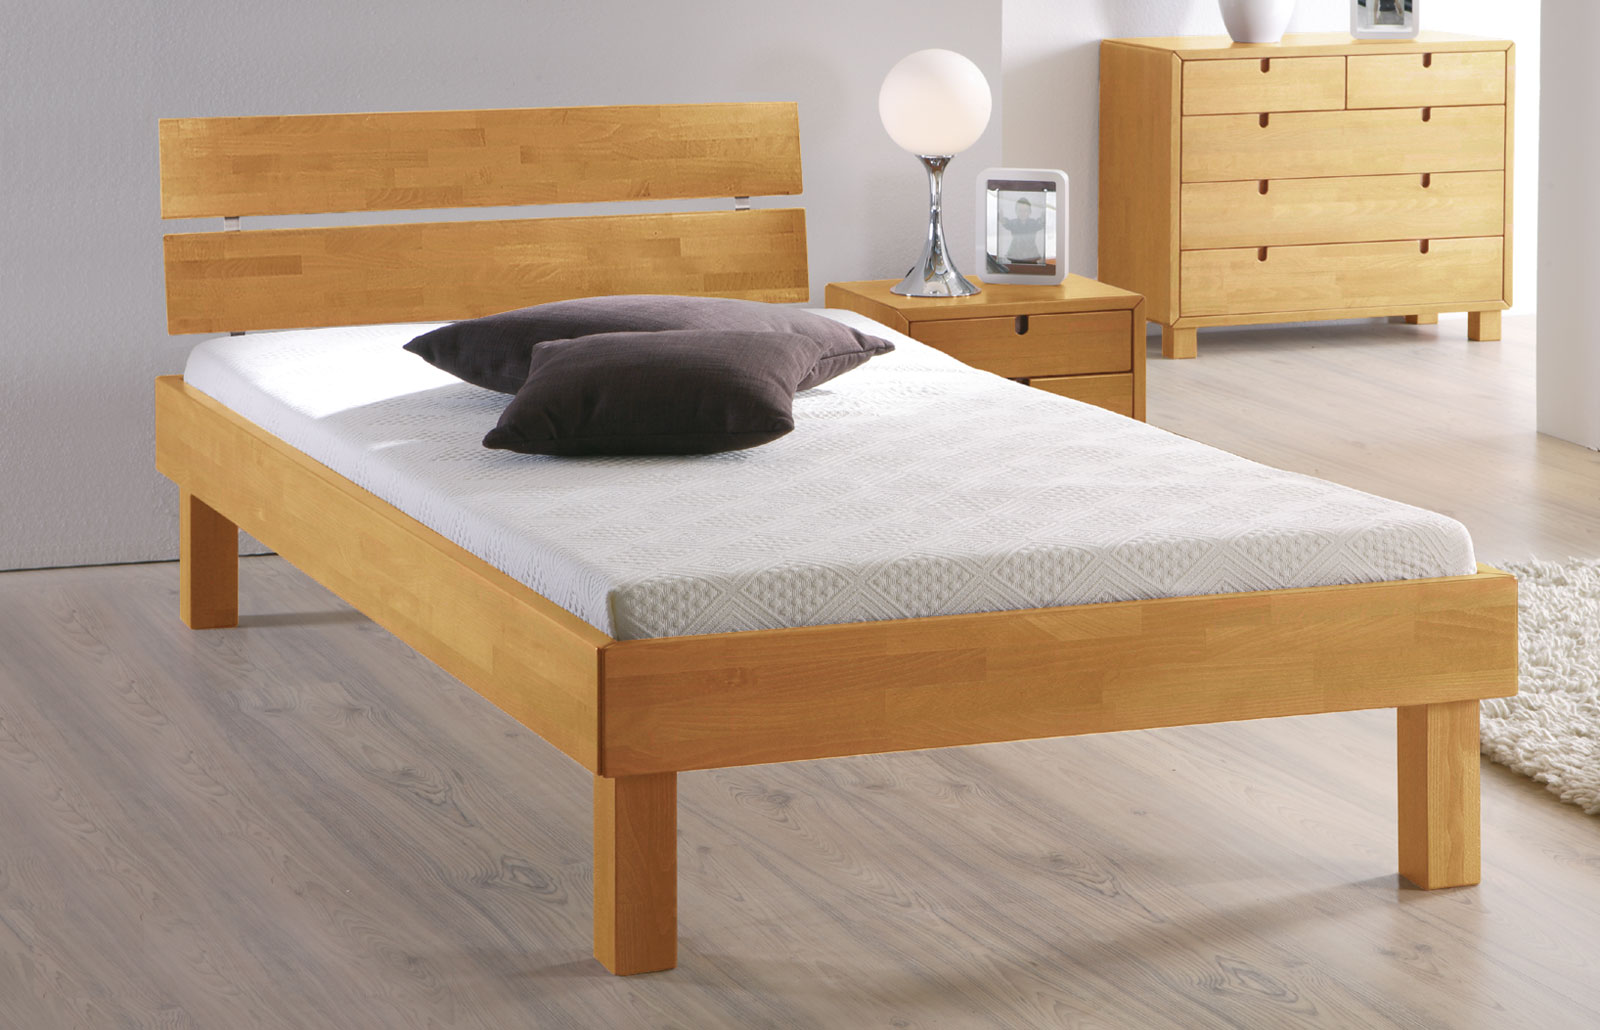 bett mit hoher liegefl che bett madrid komfort. Black Bedroom Furniture Sets. Home Design Ideas